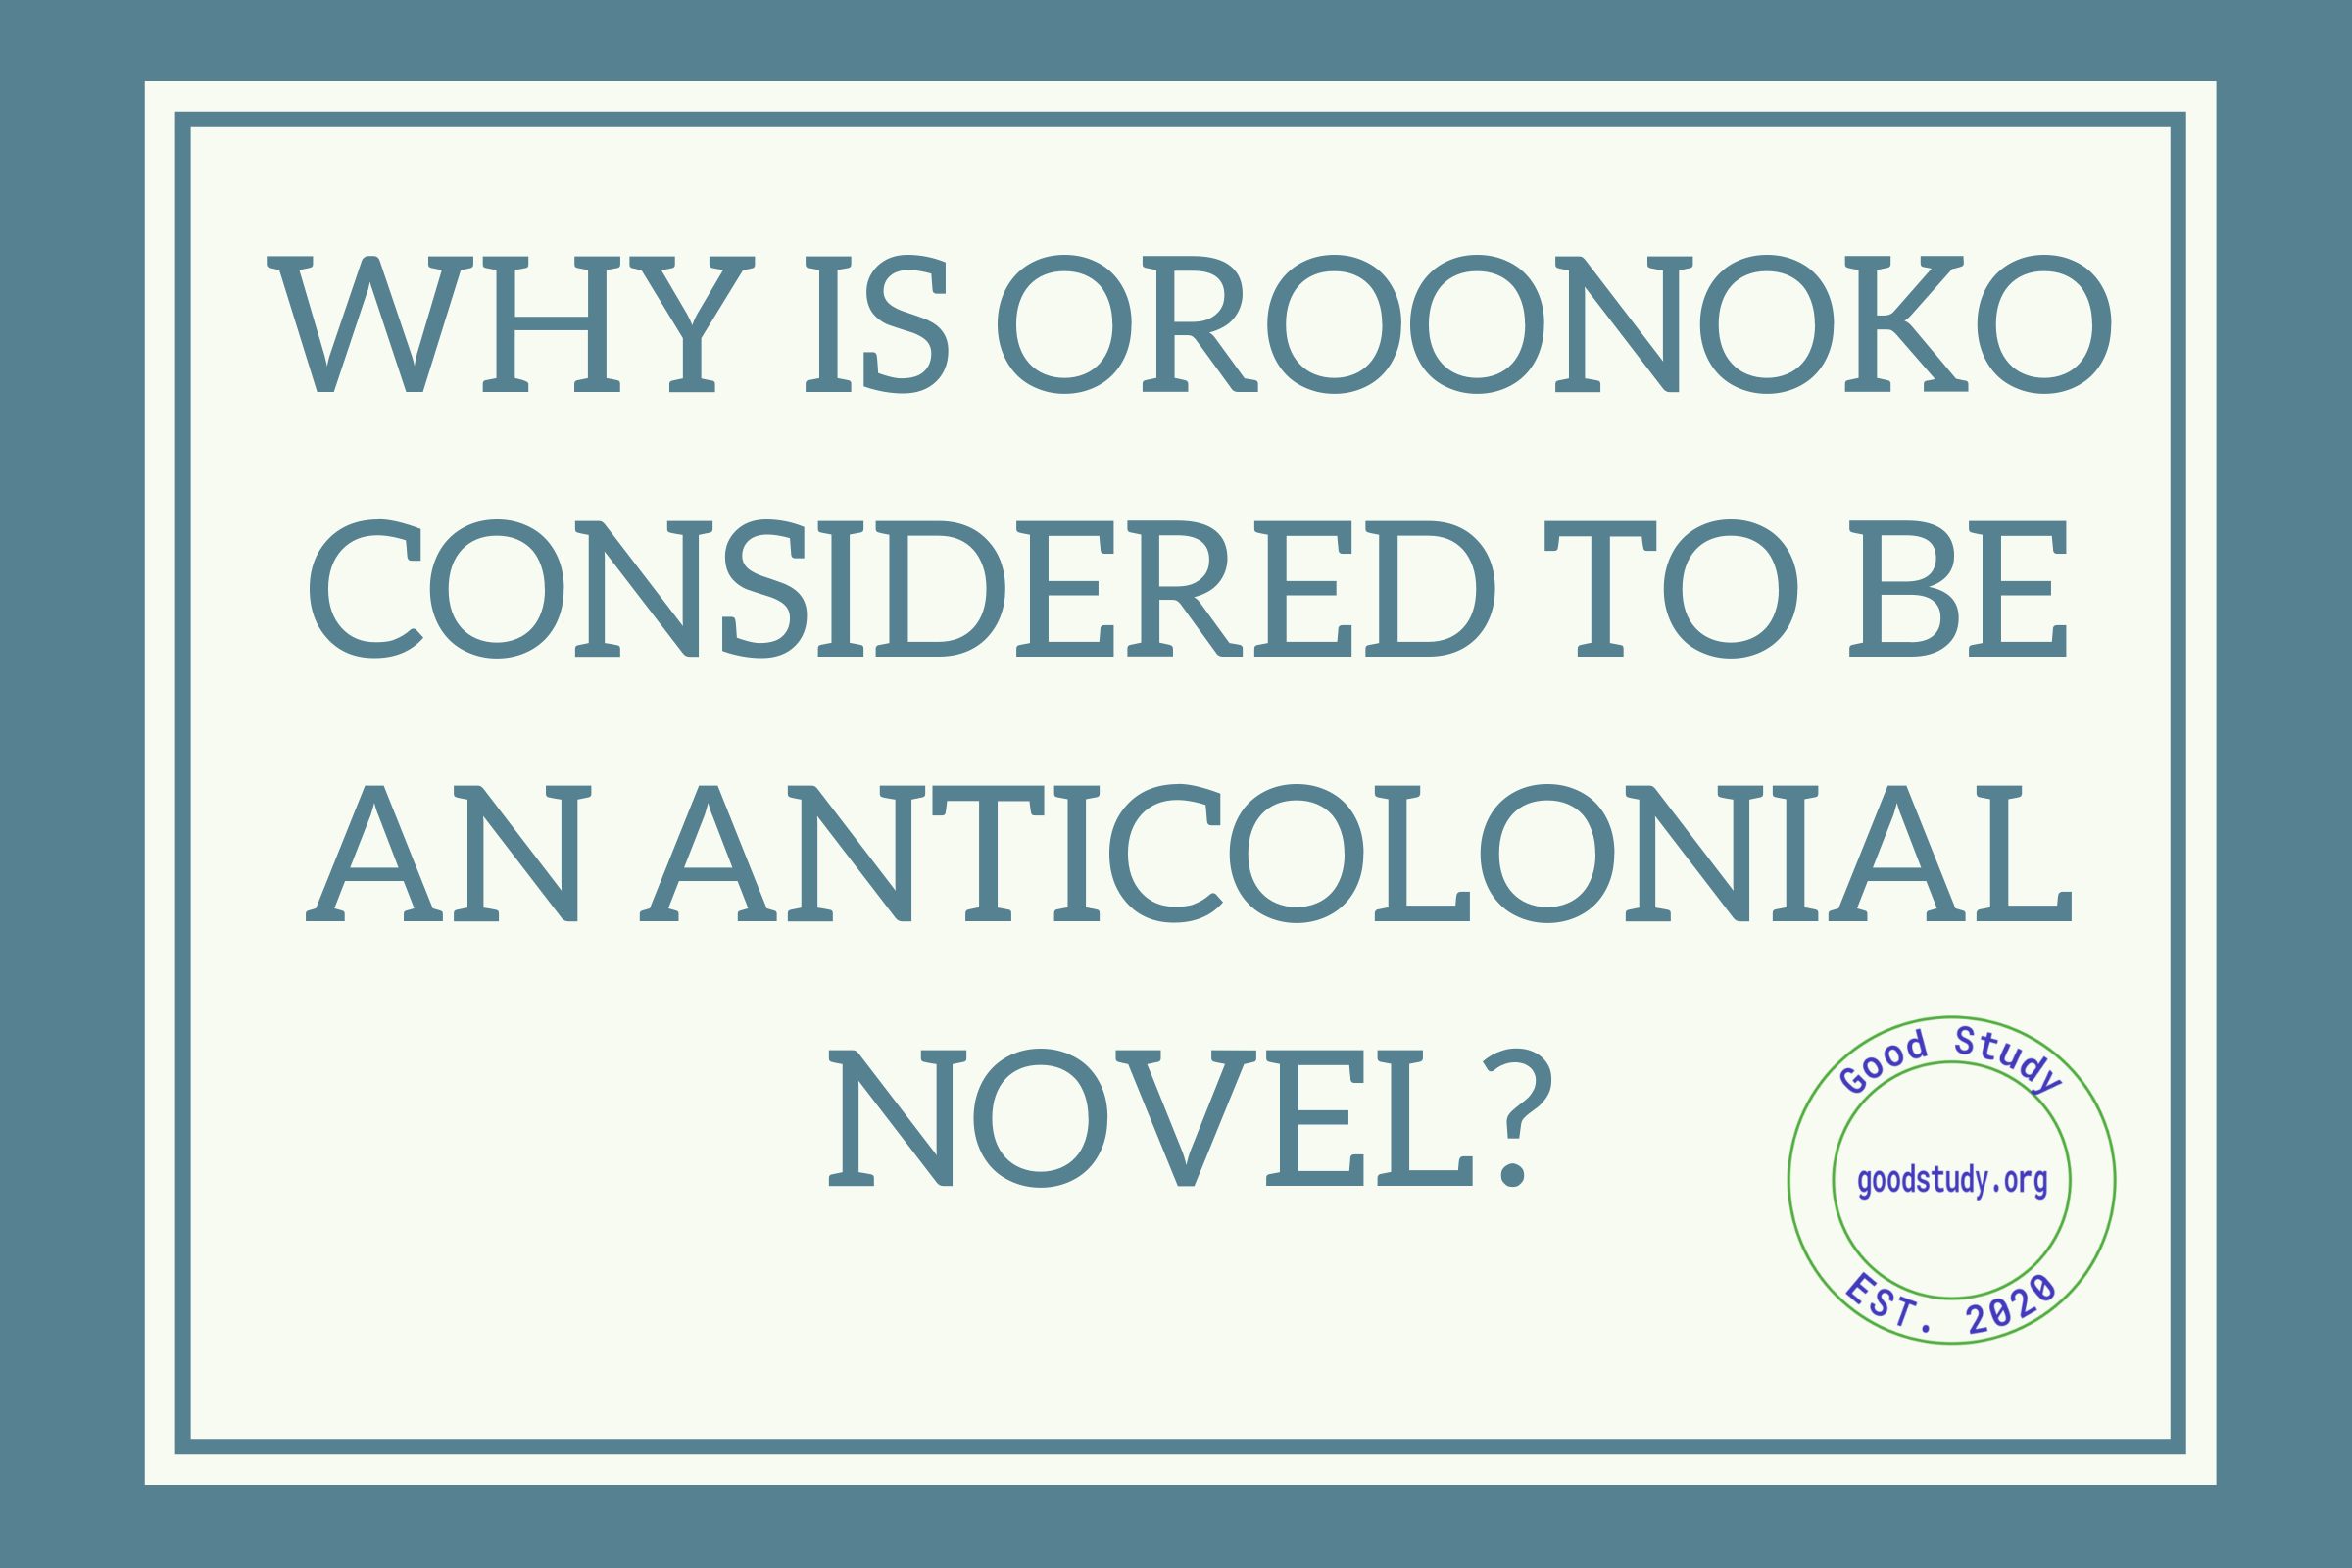 Why is Oroonoko considered to be an anticolonial novel?